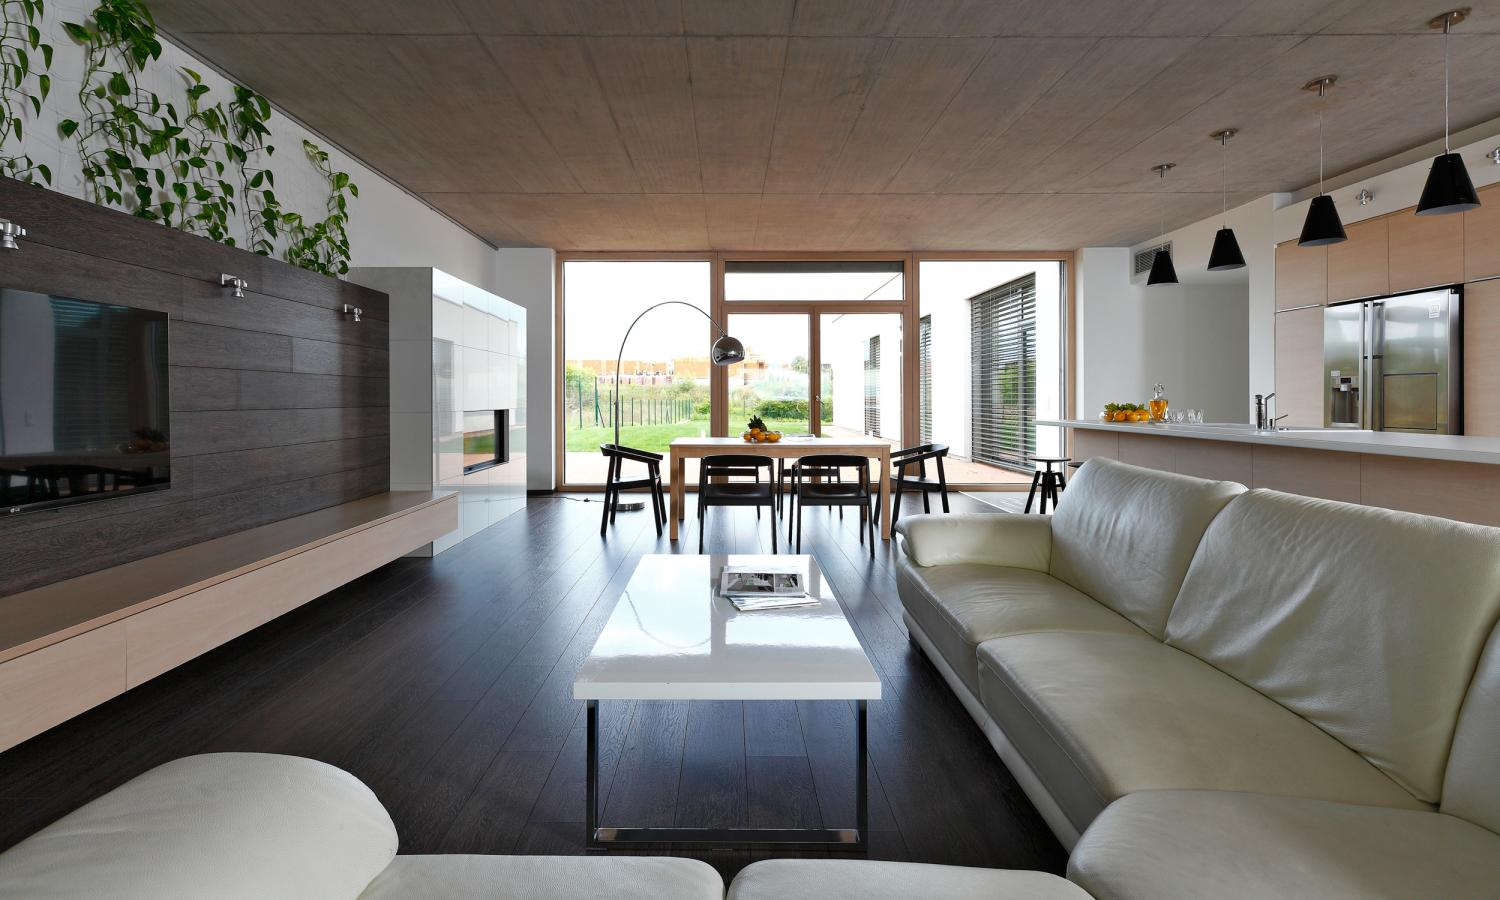 Open Living Room Designs Indoor Plants Inspiration For Your Apartment Decorating Idea